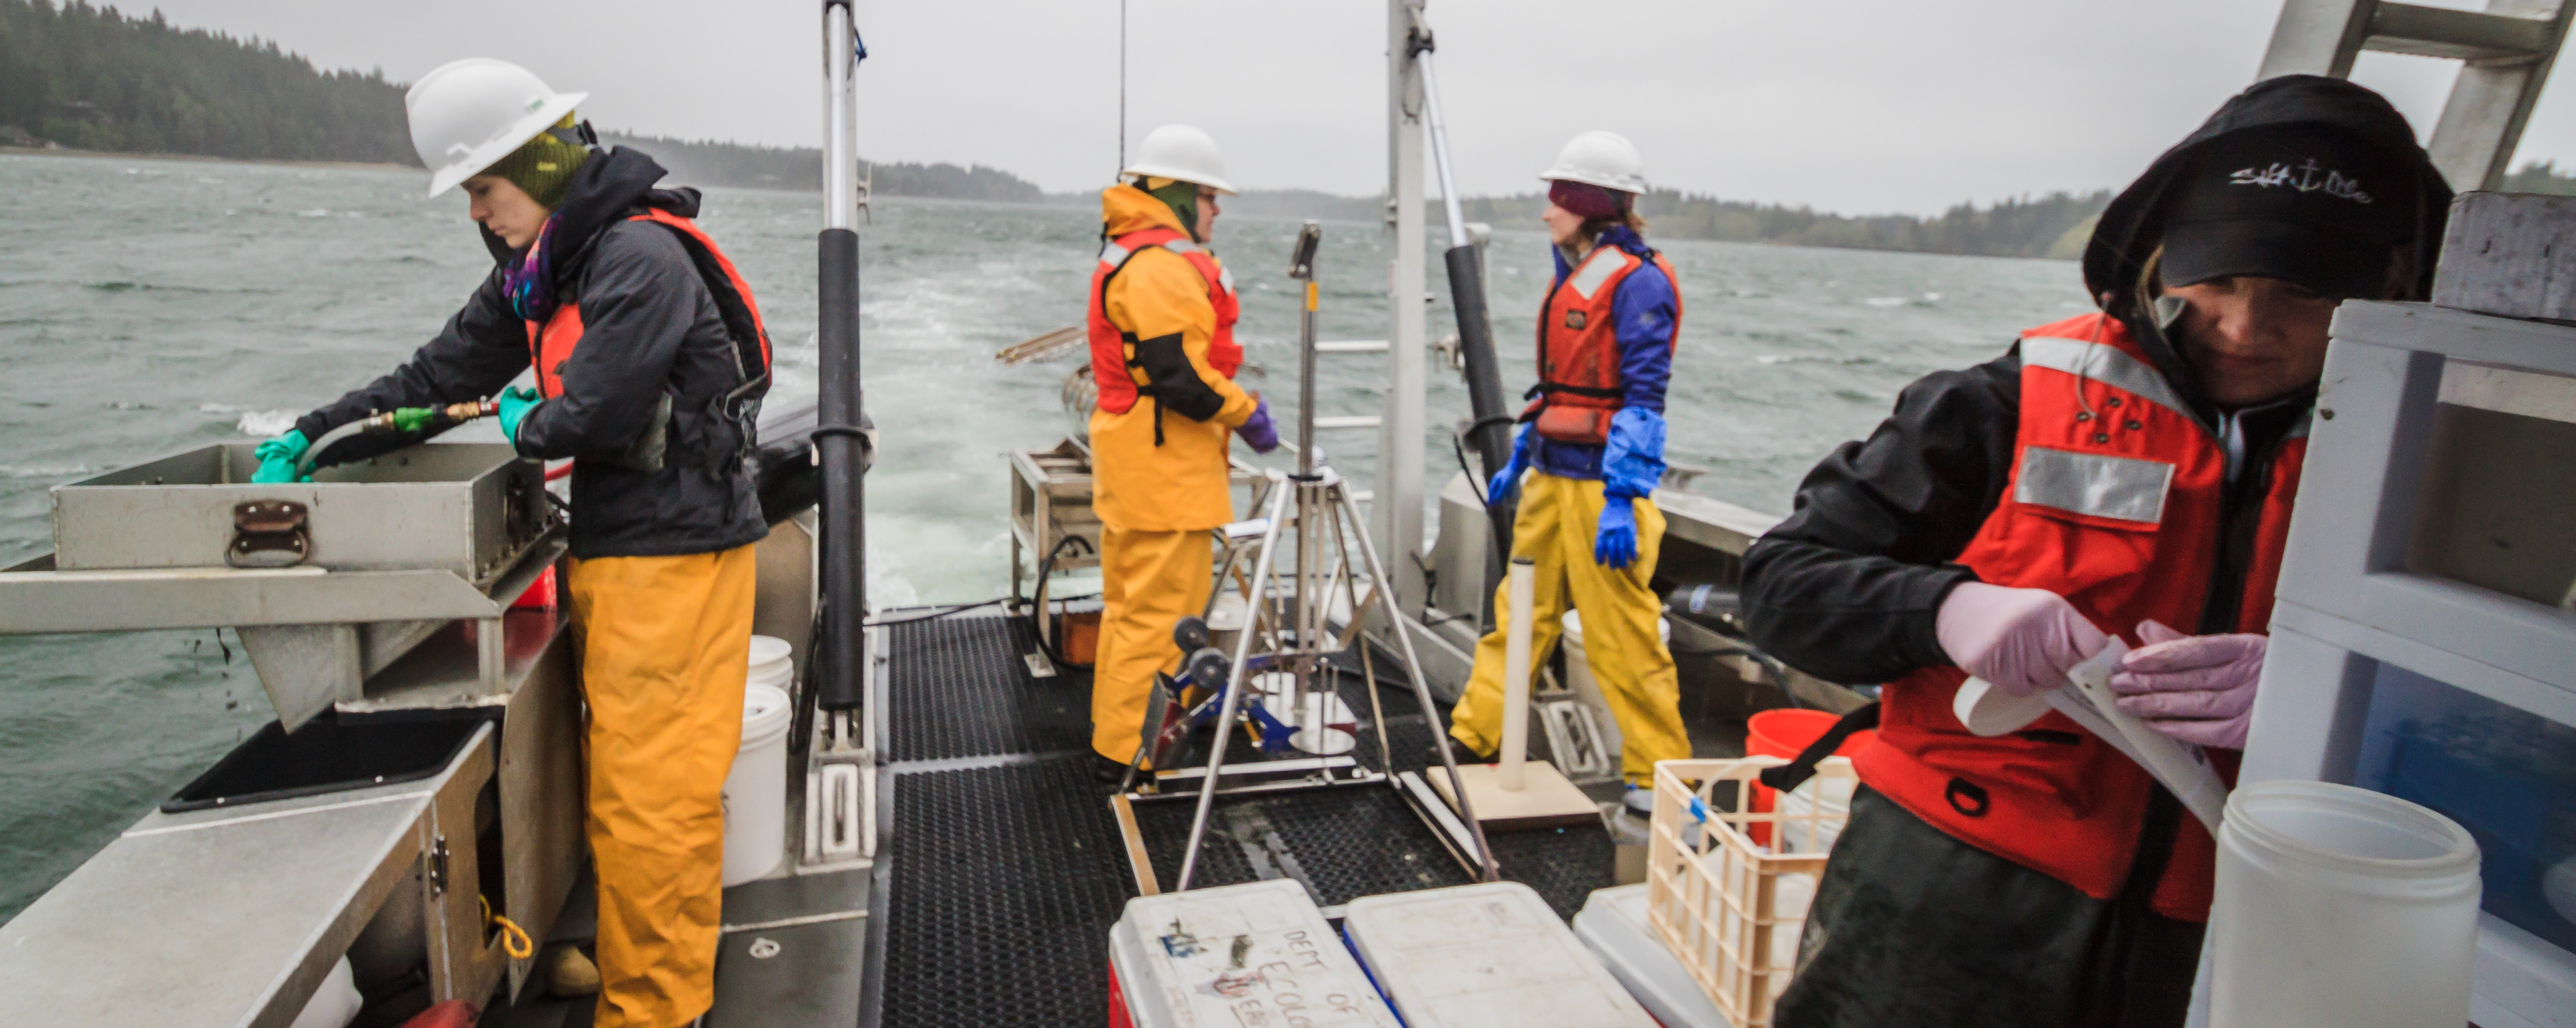 Four scientists in life jackets and rain suits work on the deck of a boat on a cloudy day on Puget Sound. One is washing sediment in a sieve with a hose and others are moving tubes full of sediment.